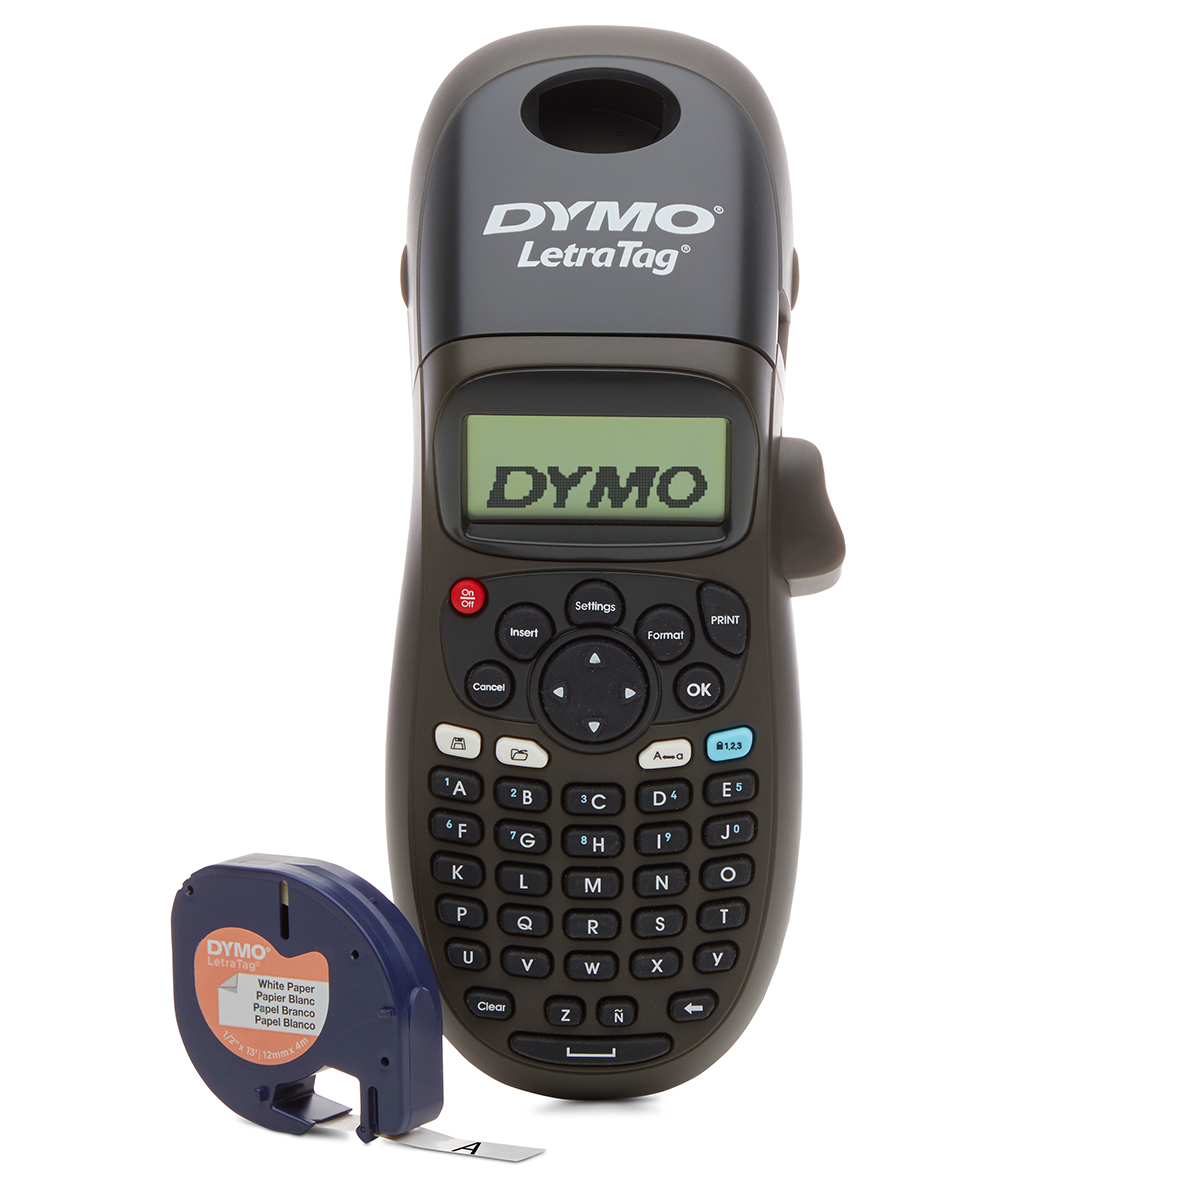 Dymo Letratag LT100-H Label Maker Black